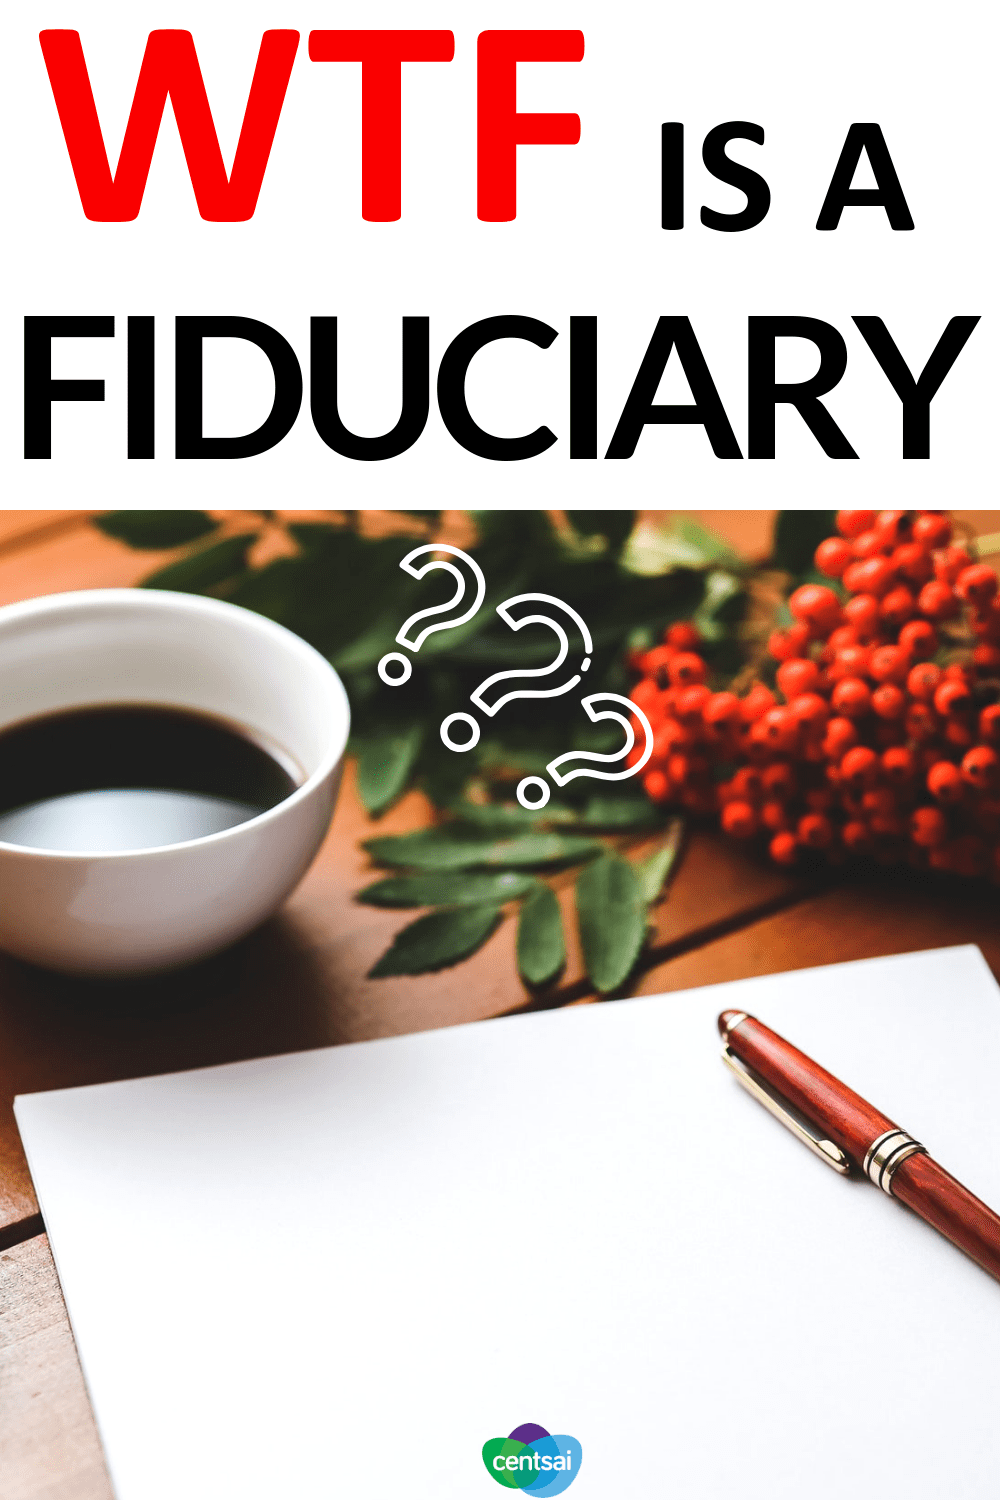 WTF Is a Fiduciary? Want a trustworthy financial adviser? Make sure she's a fiduciary. Read and learn what it means to be a fiduciary and why it's important. #Fiduciary #financialadviser #personalfinance #moneymatters